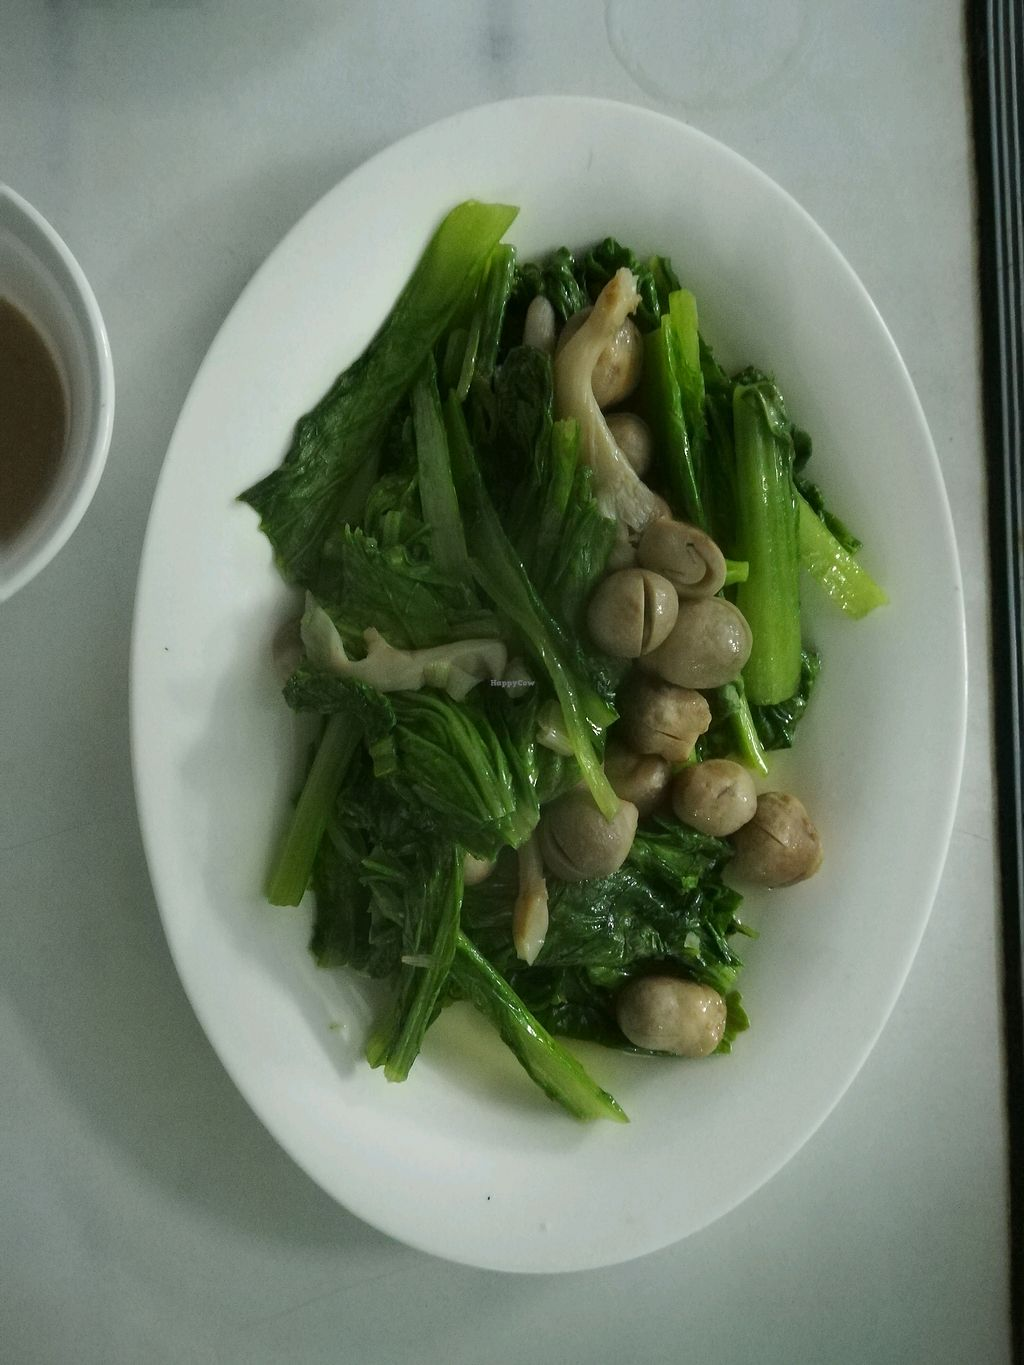 """Photo of Thanh Lieu  by <a href=""""/members/profile/Kyttiara"""">Kyttiara</a> <br/>mushrooms and greens  <br/> December 13, 2017  - <a href='/contact/abuse/image/28812/335136'>Report</a>"""